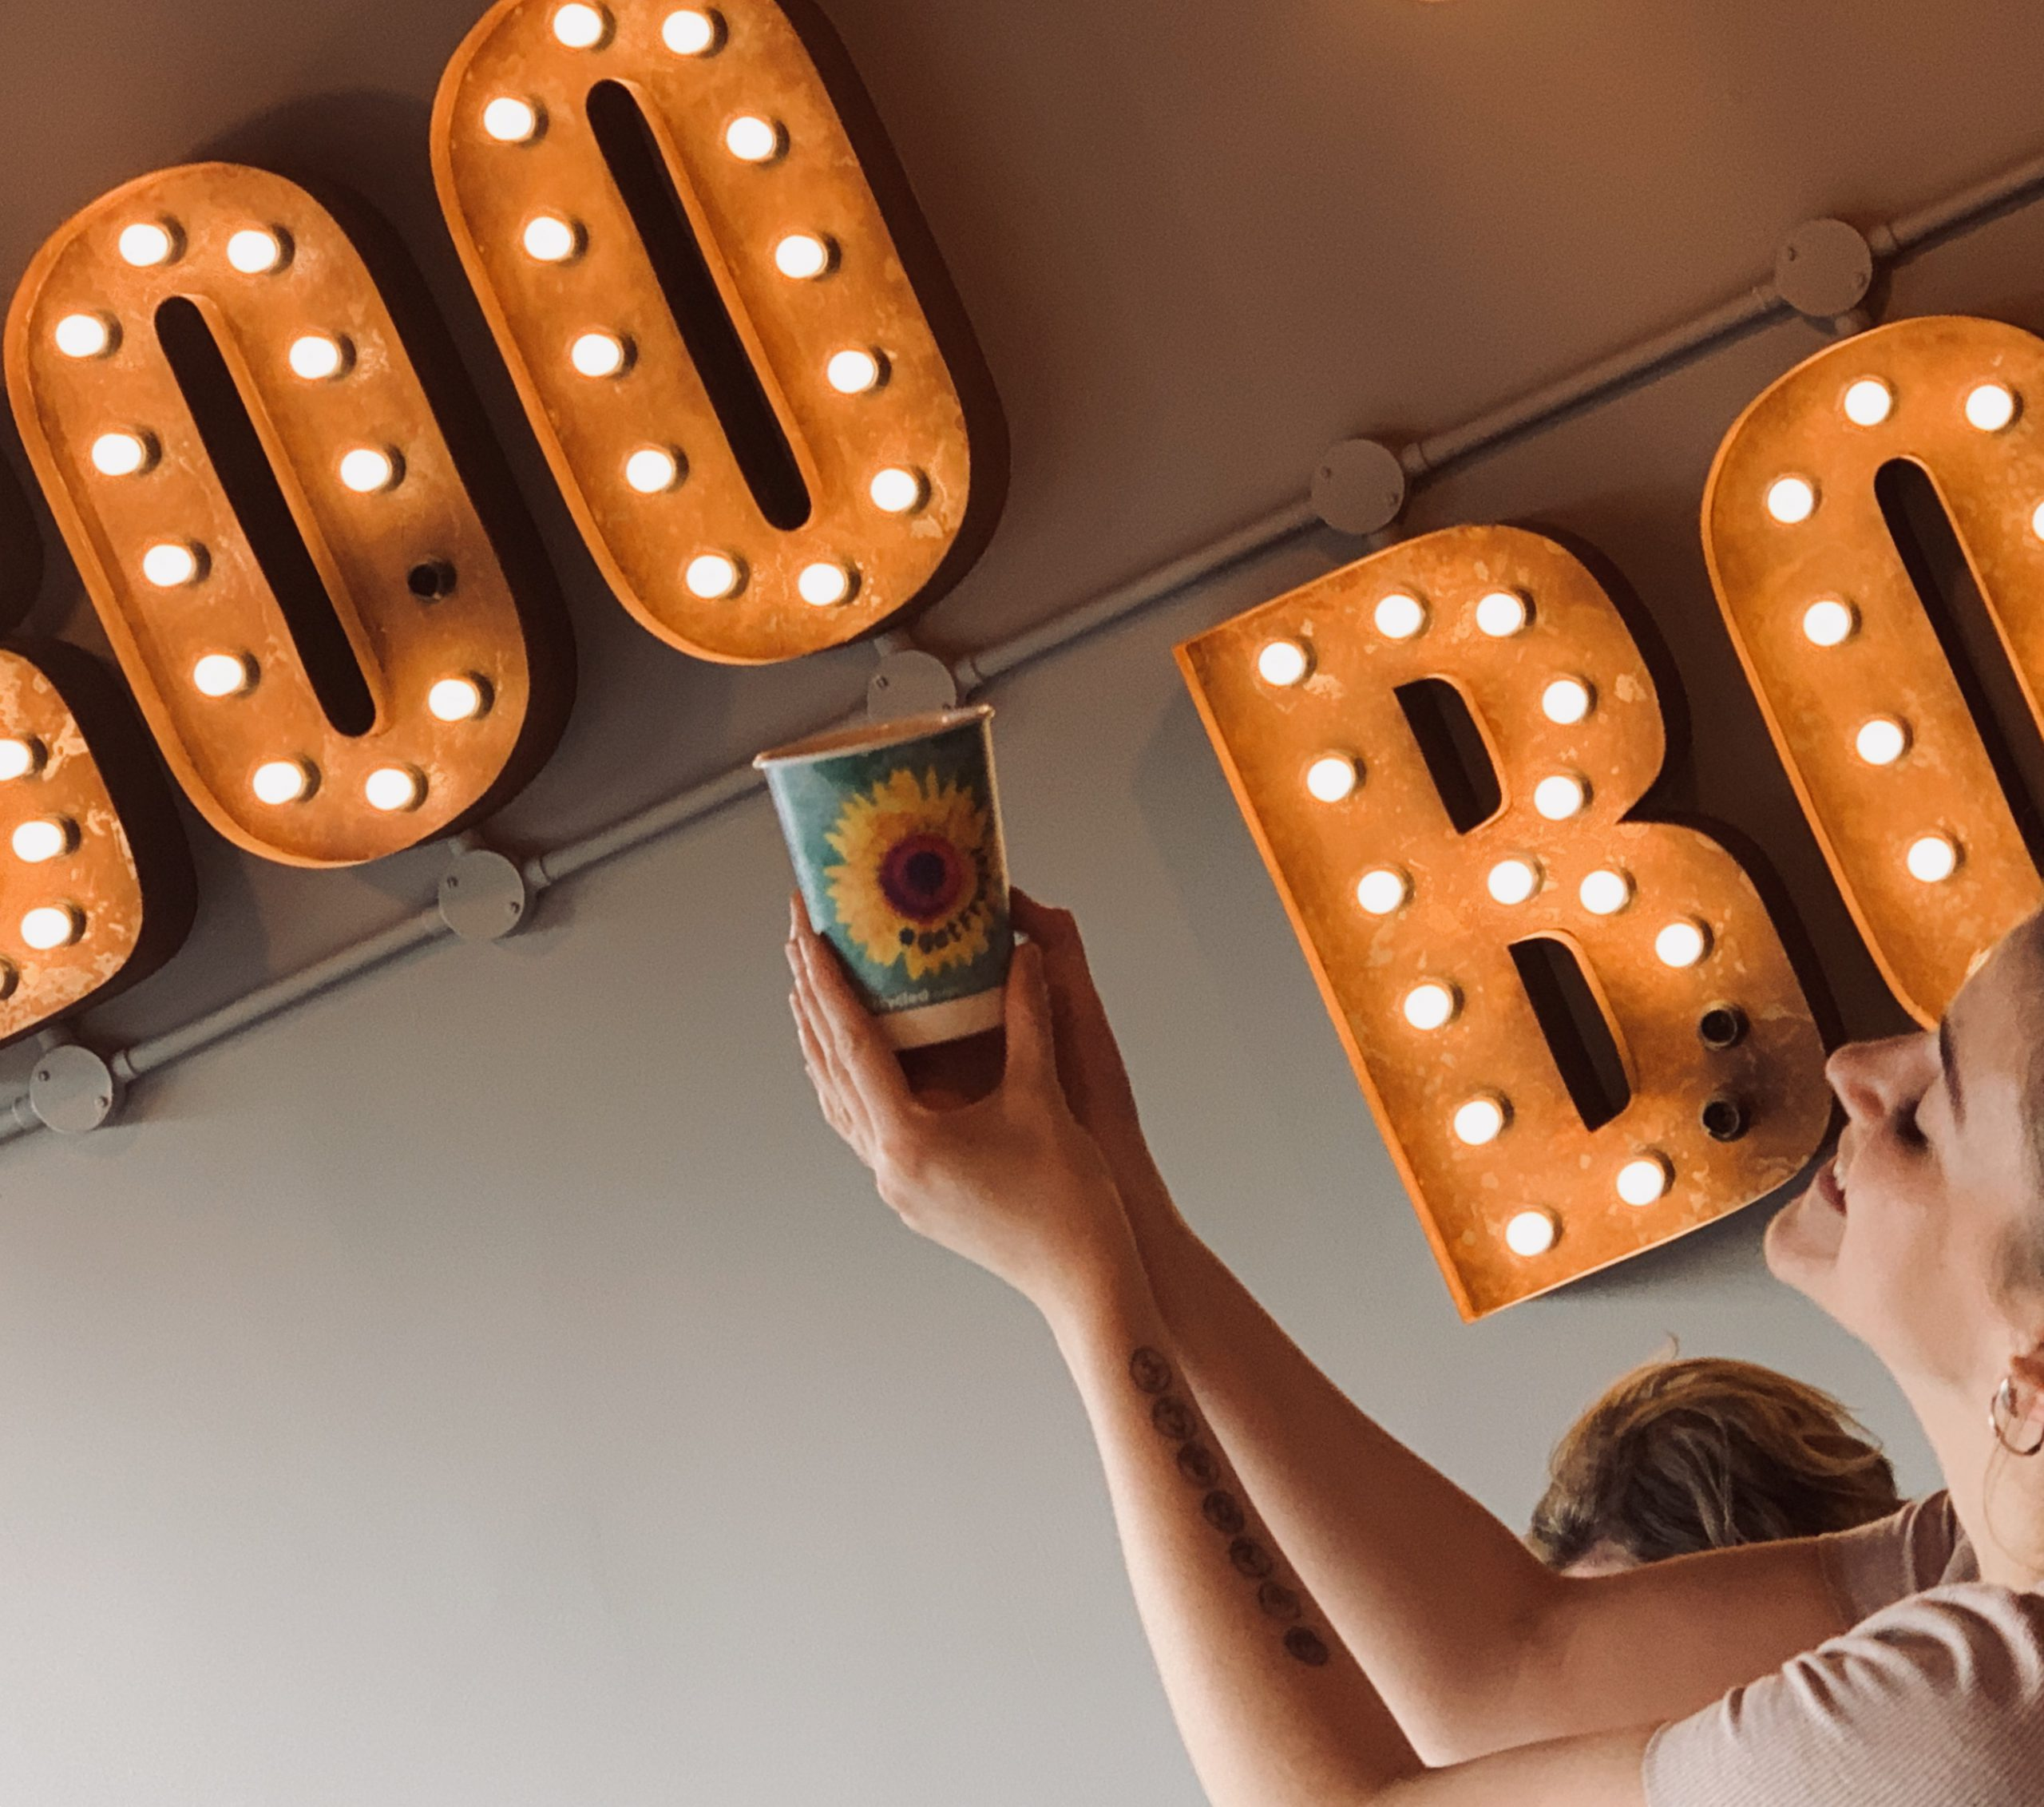 Boo Boo Coffee of Birmingham leads the way as Frugal Cup Pioneer